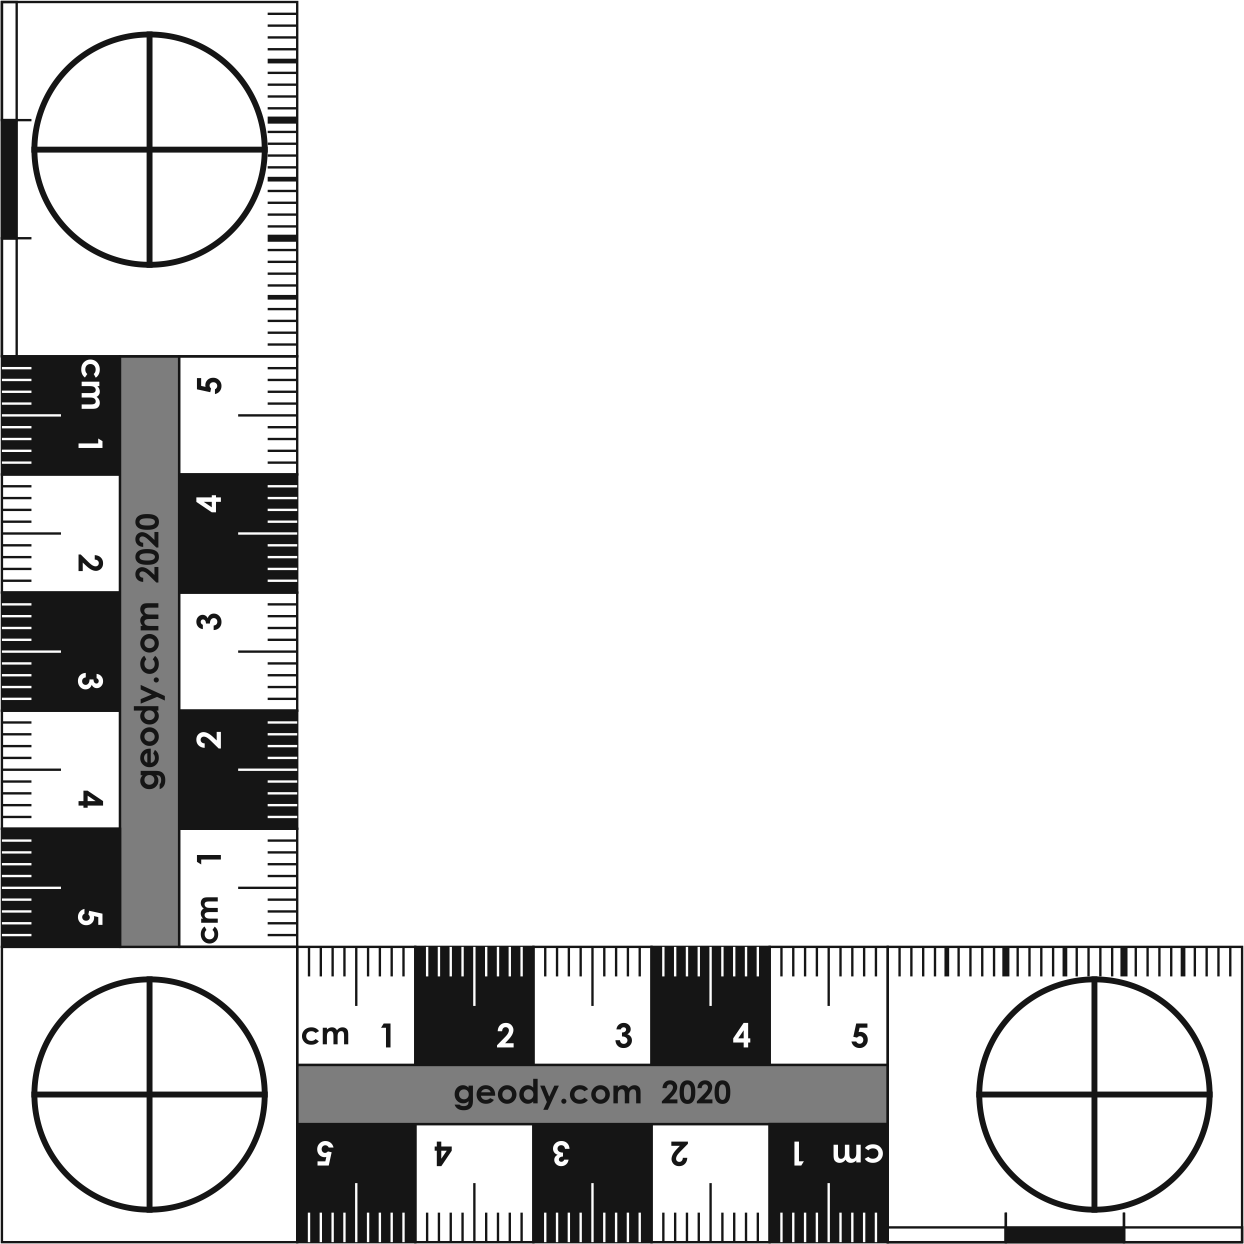 L-shaped (right angle) Photo Scale Ruler